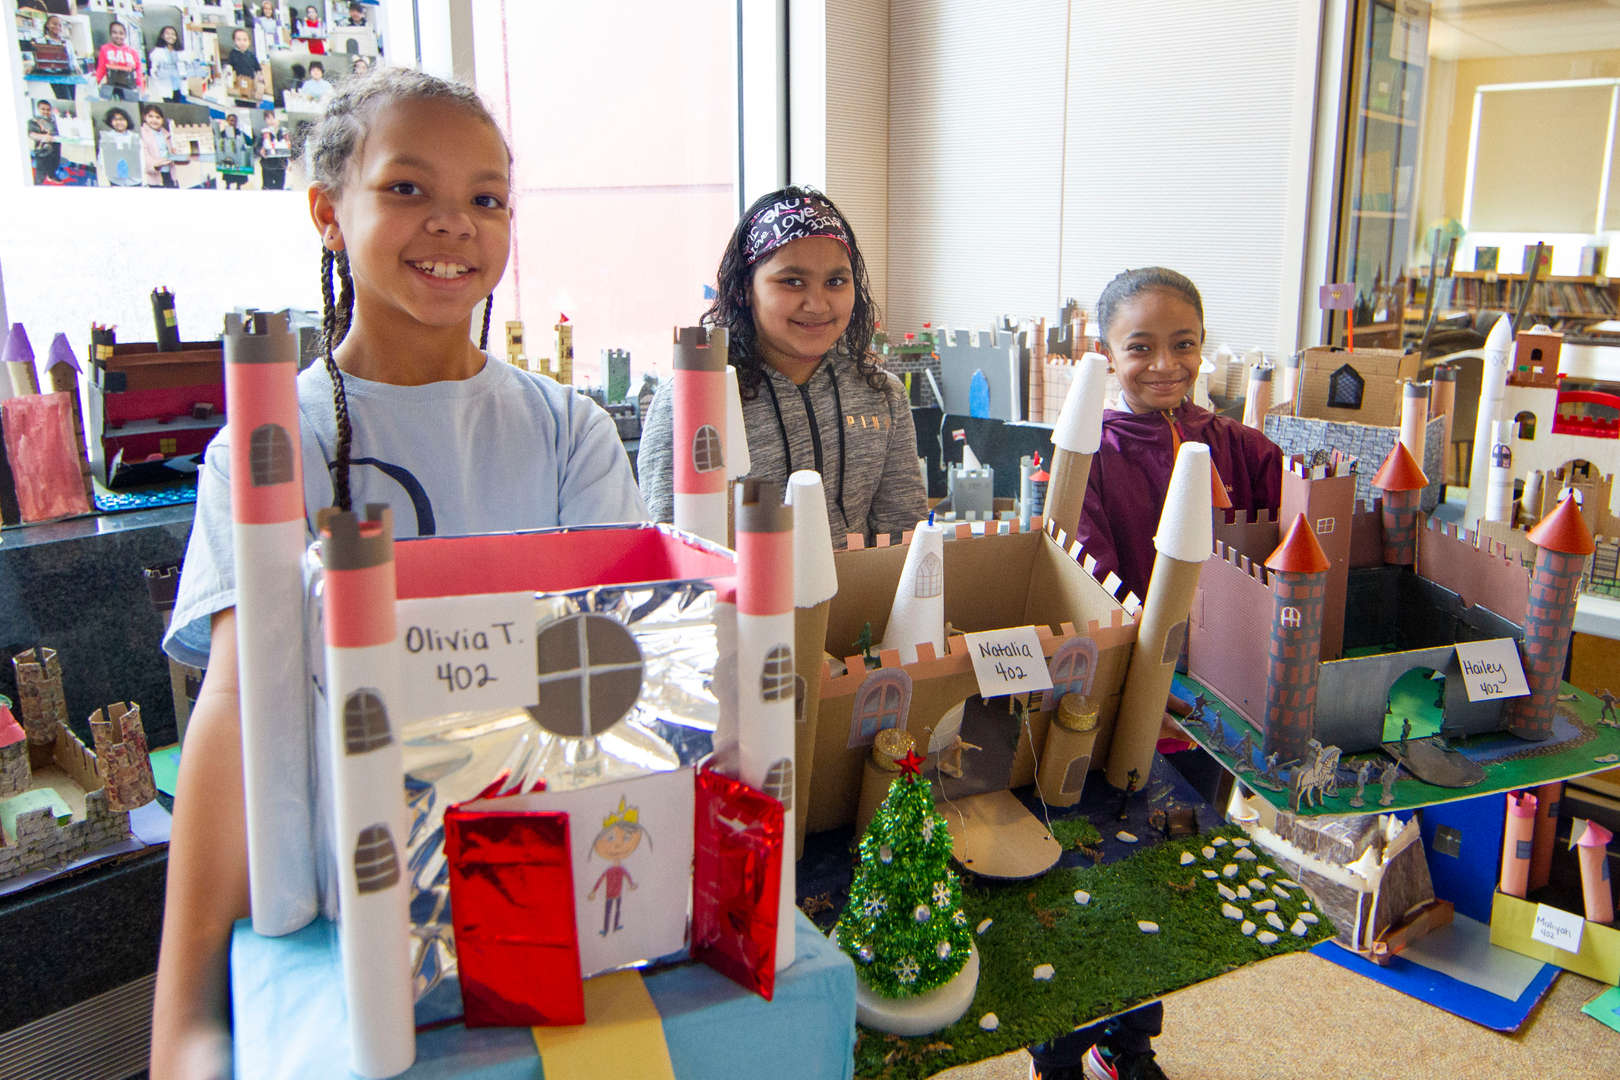 Kids showing their castle projects